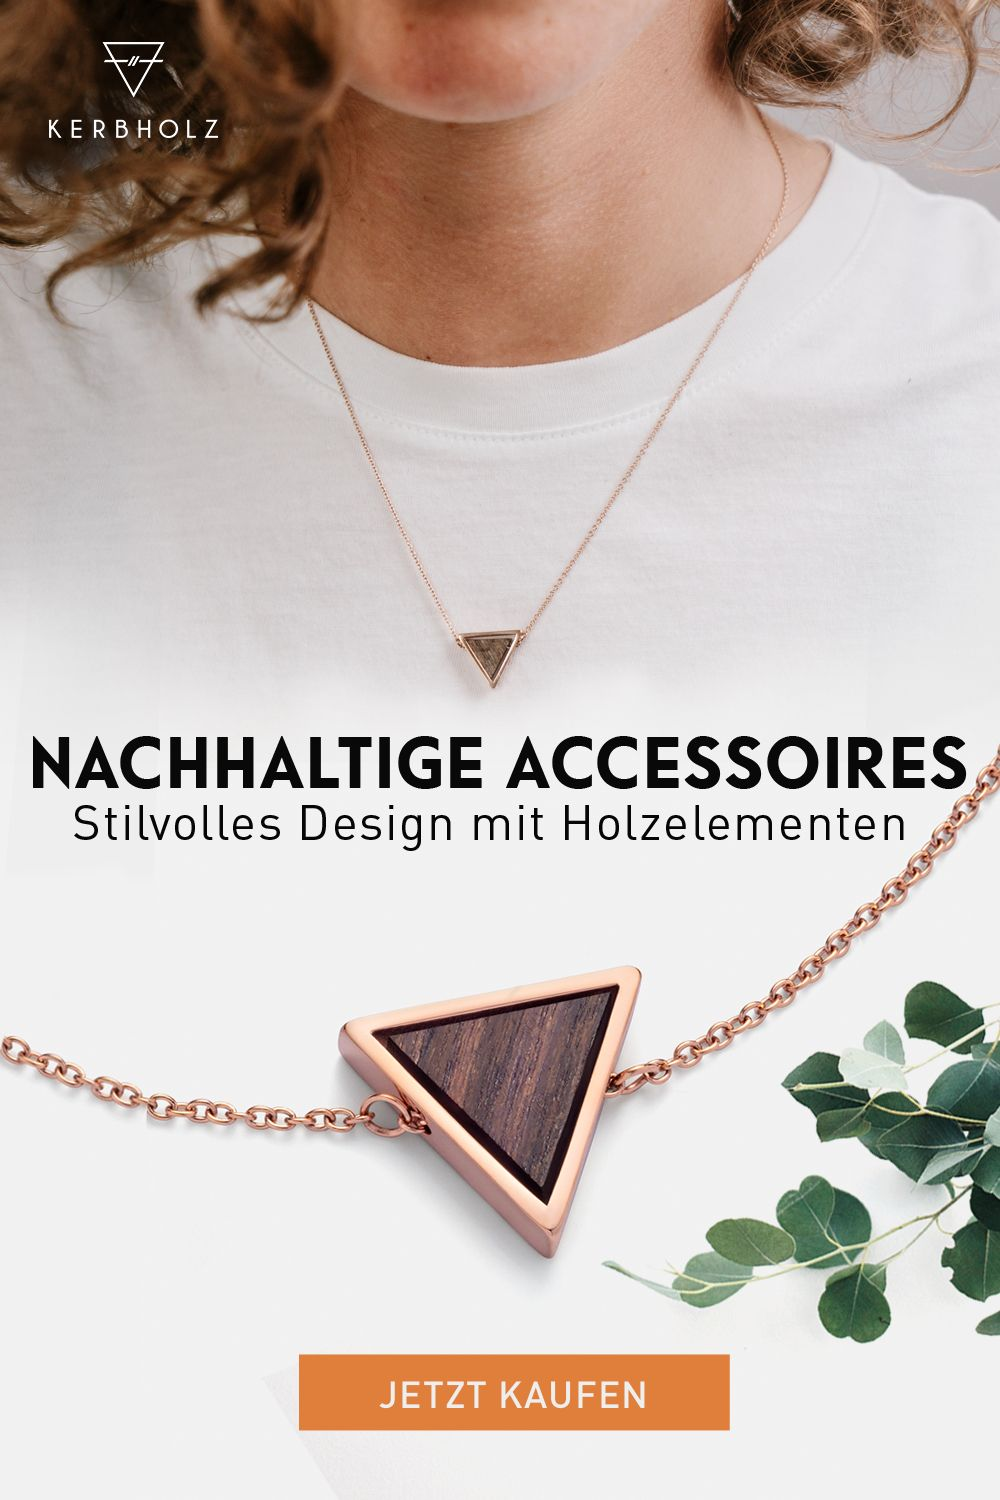 Unique wood accessories from KERBHOLZ